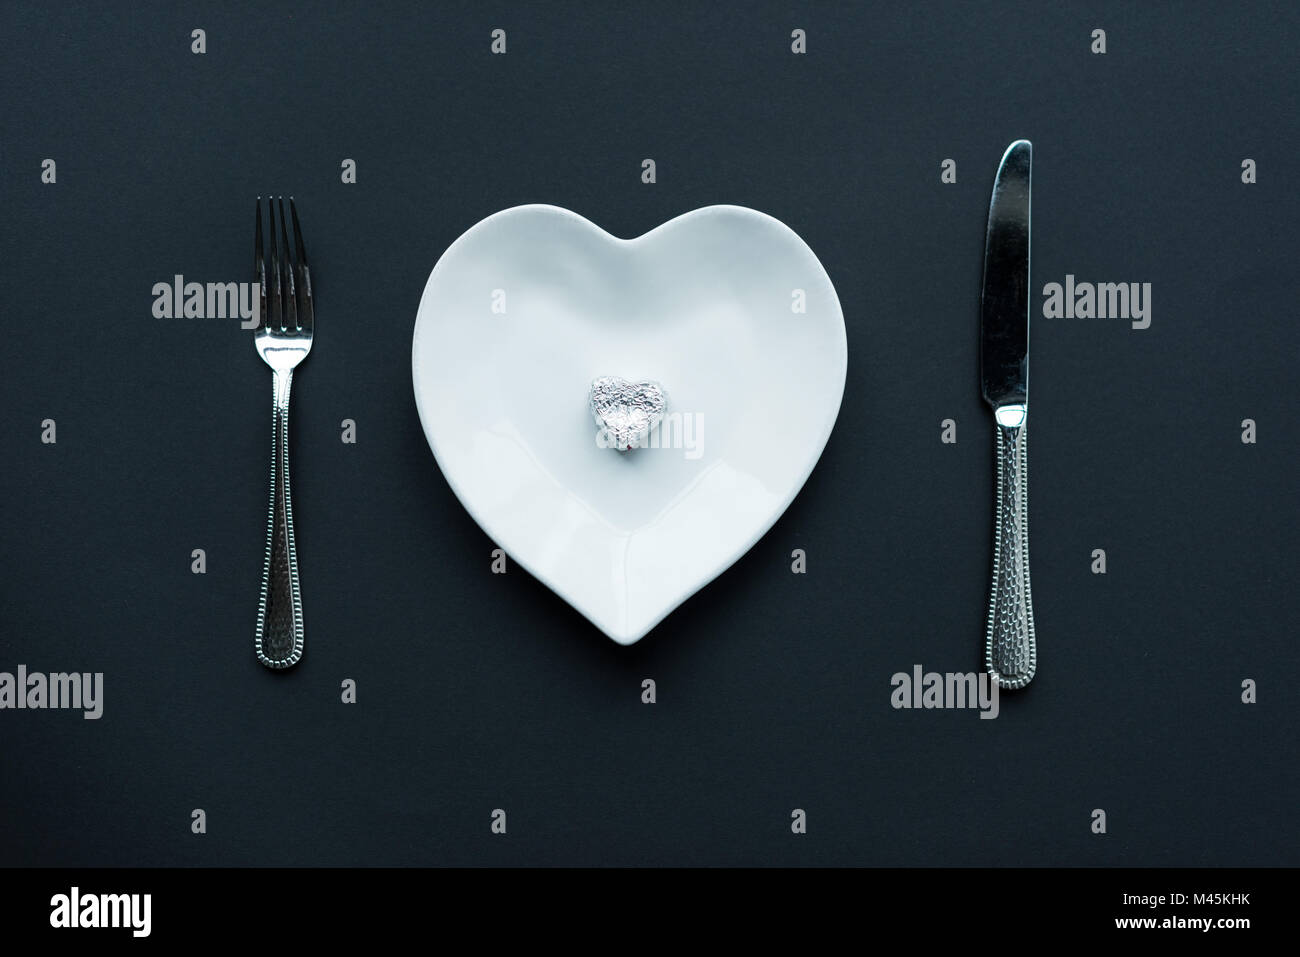 Top view of wrapped candy on white heart shaped plate with cutlery